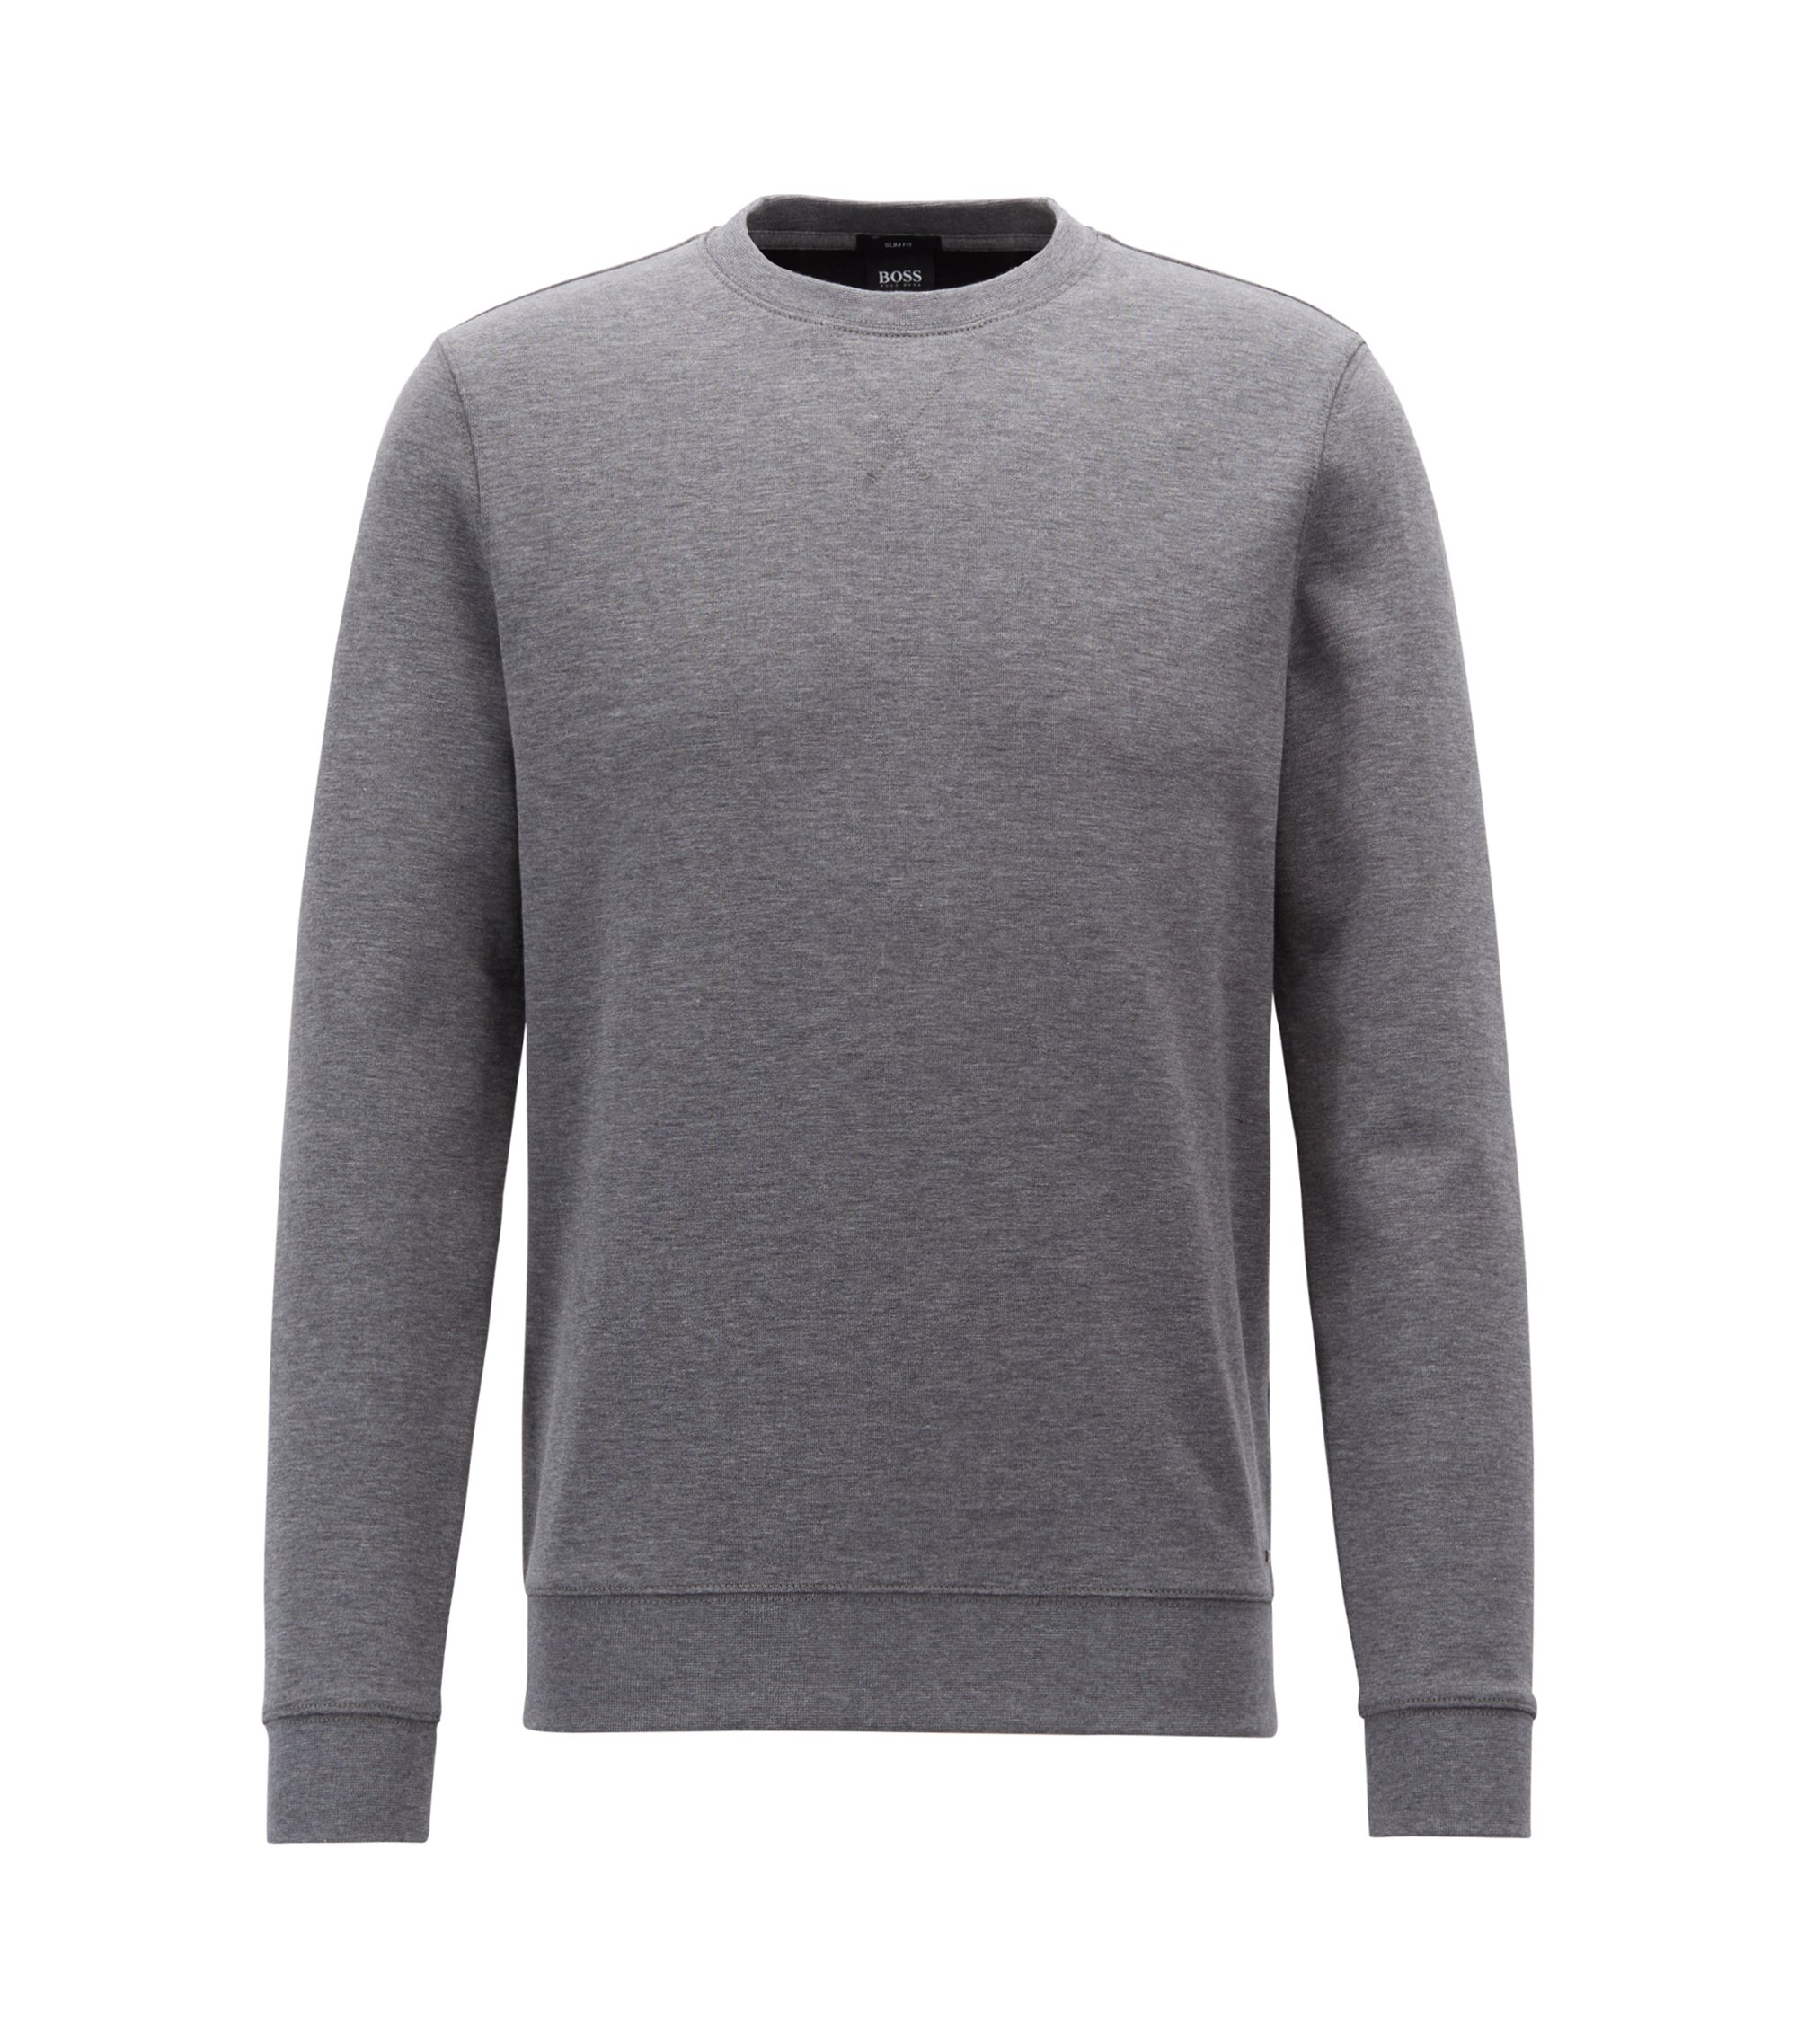 Slim-fit sweatshirt in a double-faced cotton blend, Grey